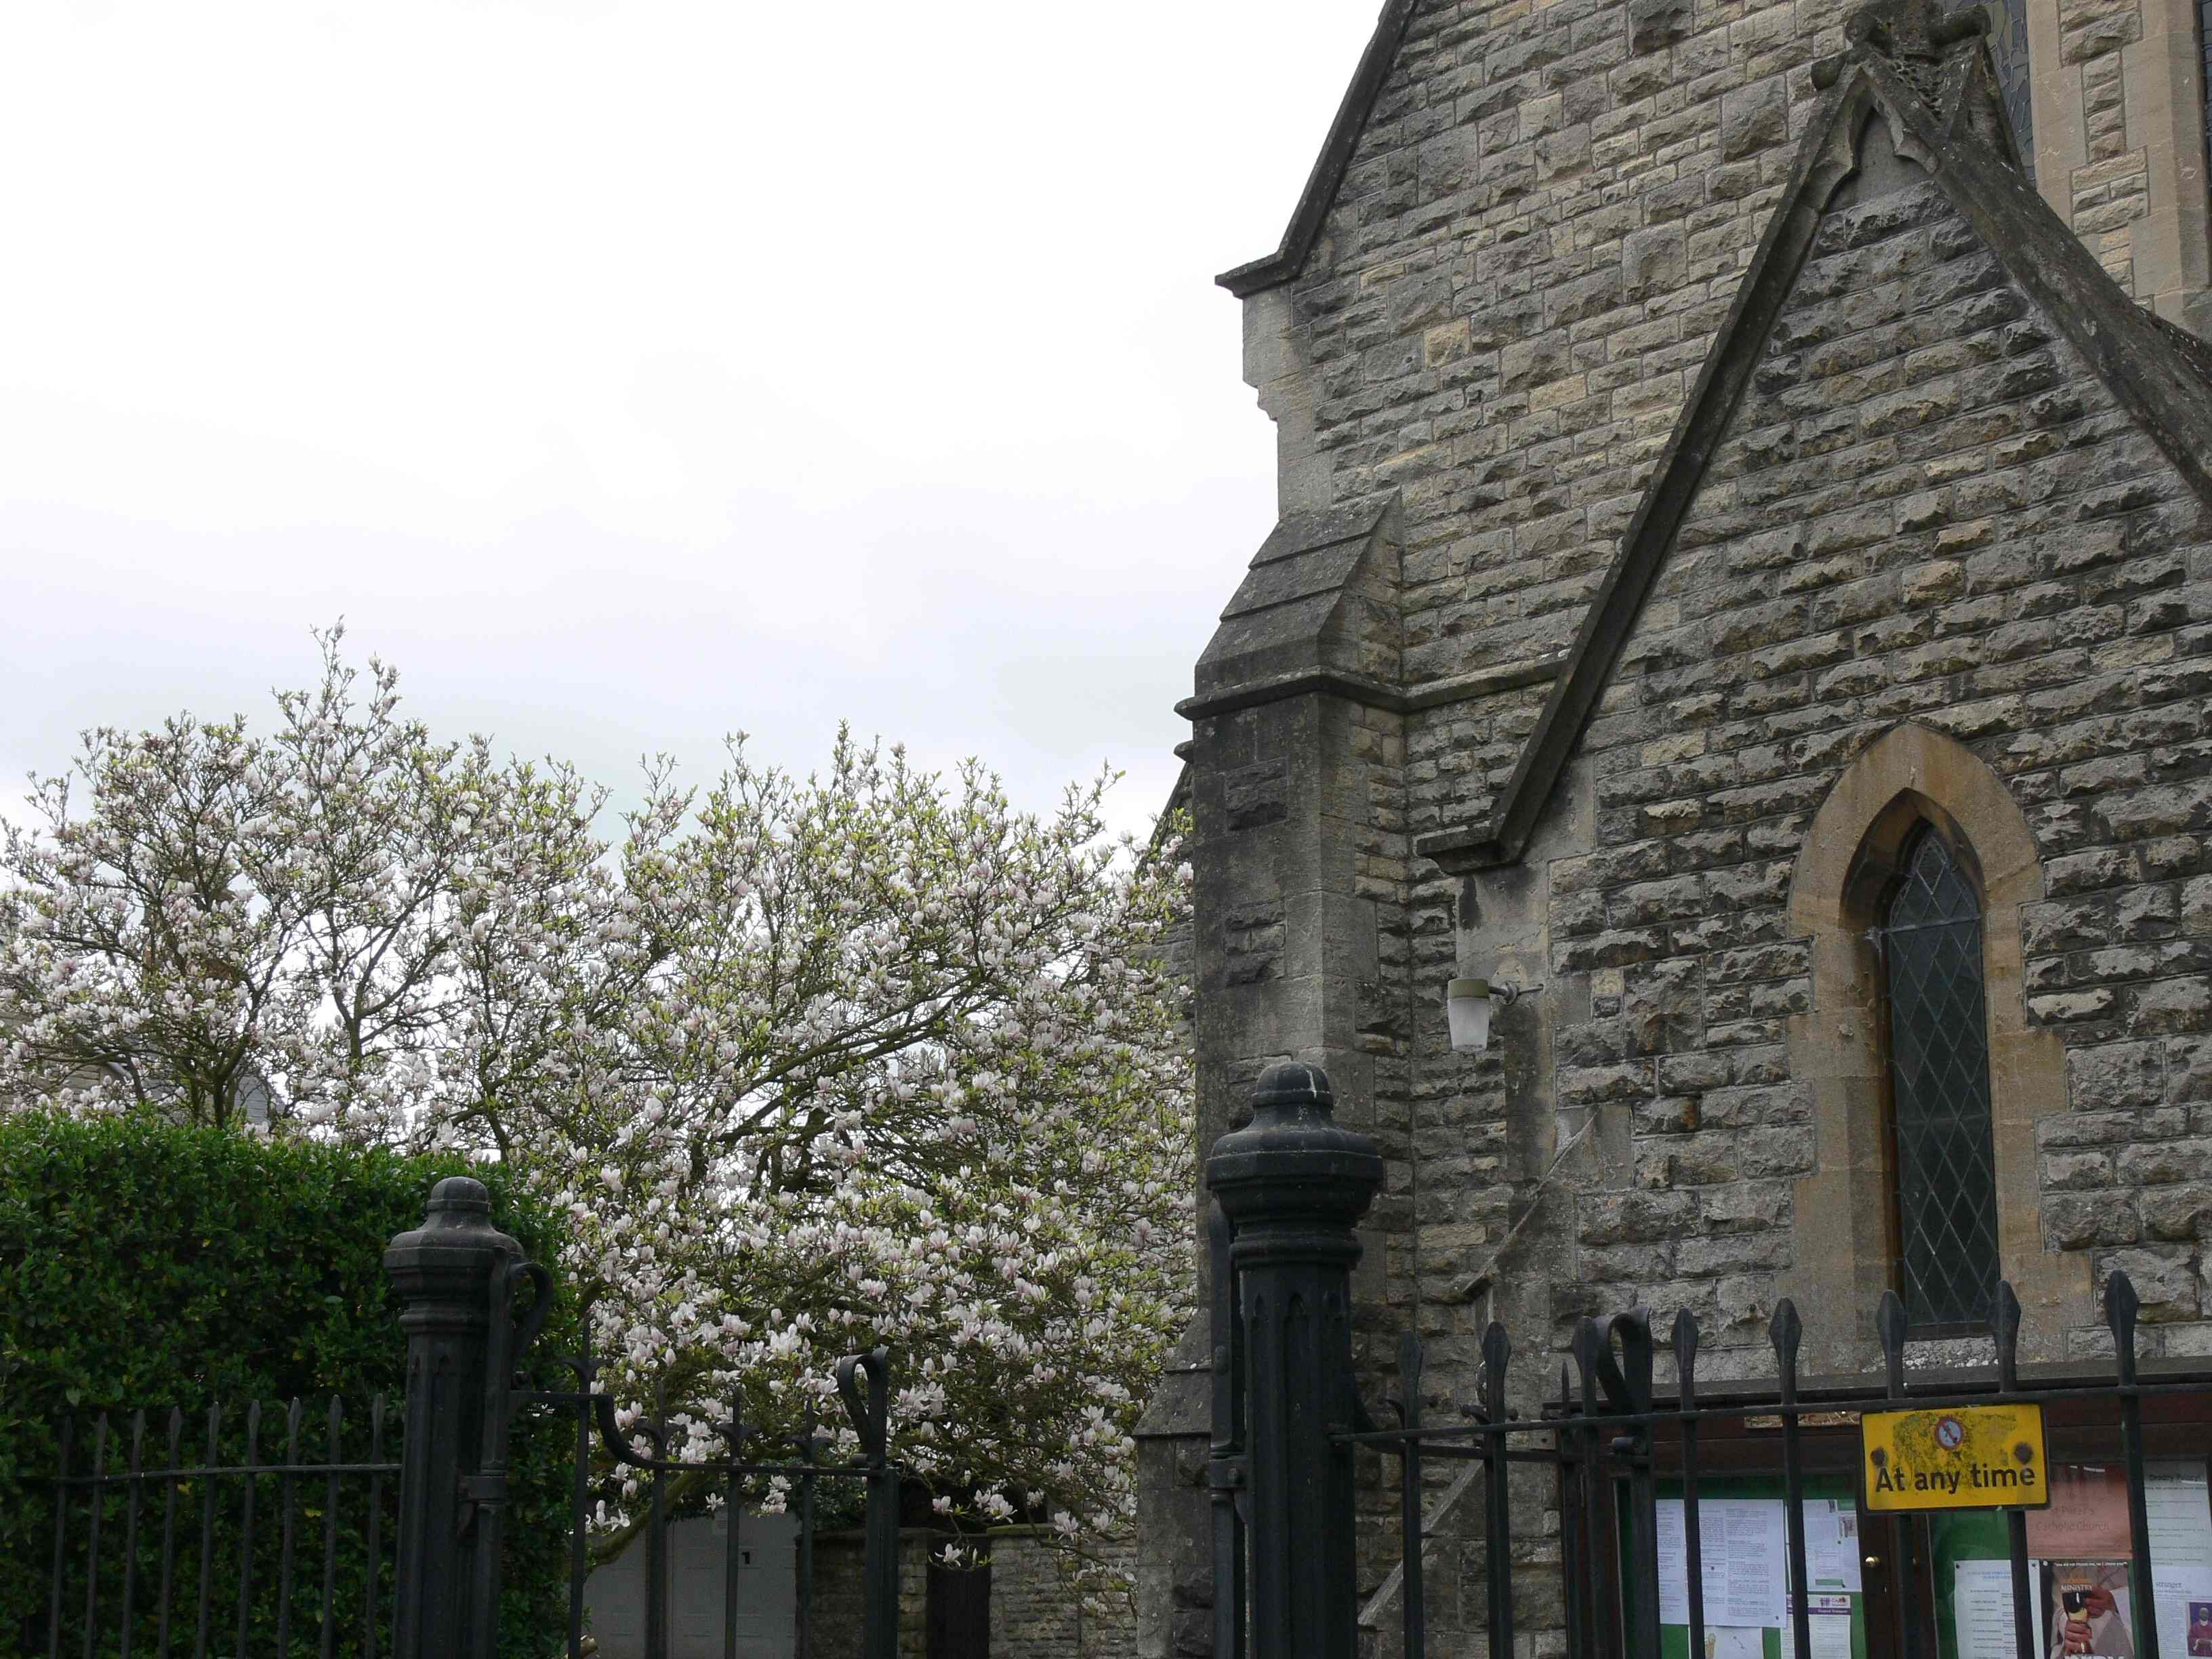 1 St Peter's Church 159